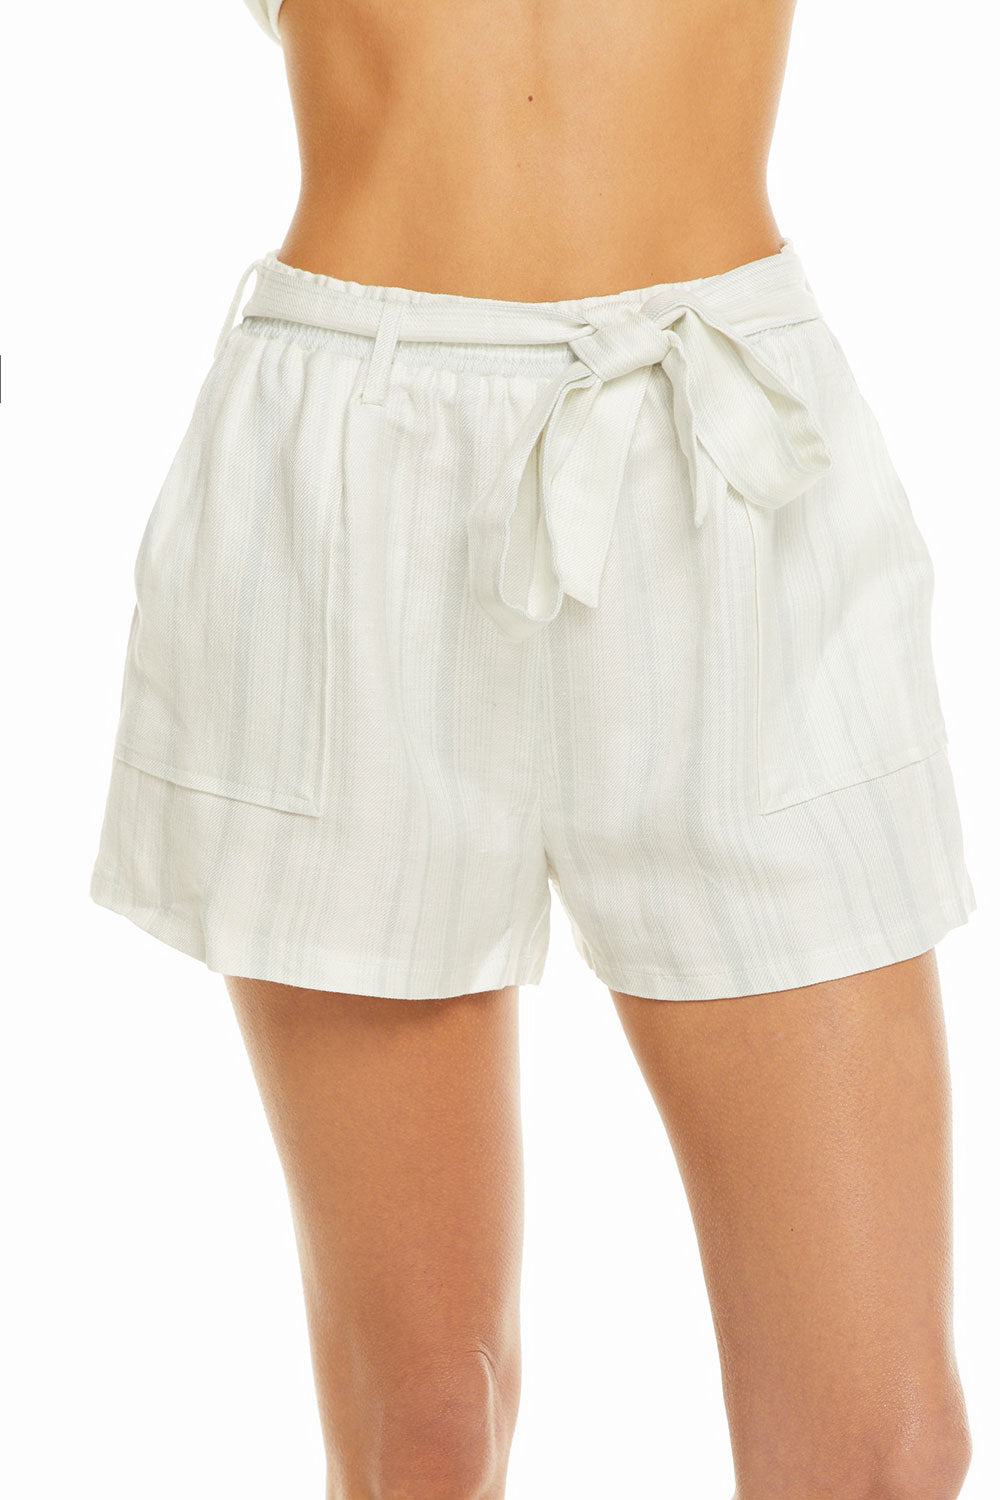 Beachy Linen Paperbag Waist Tie Shorts, WOMENS, chaserbrand.com,chaser clothing,chaser apparel,chaser los angeles